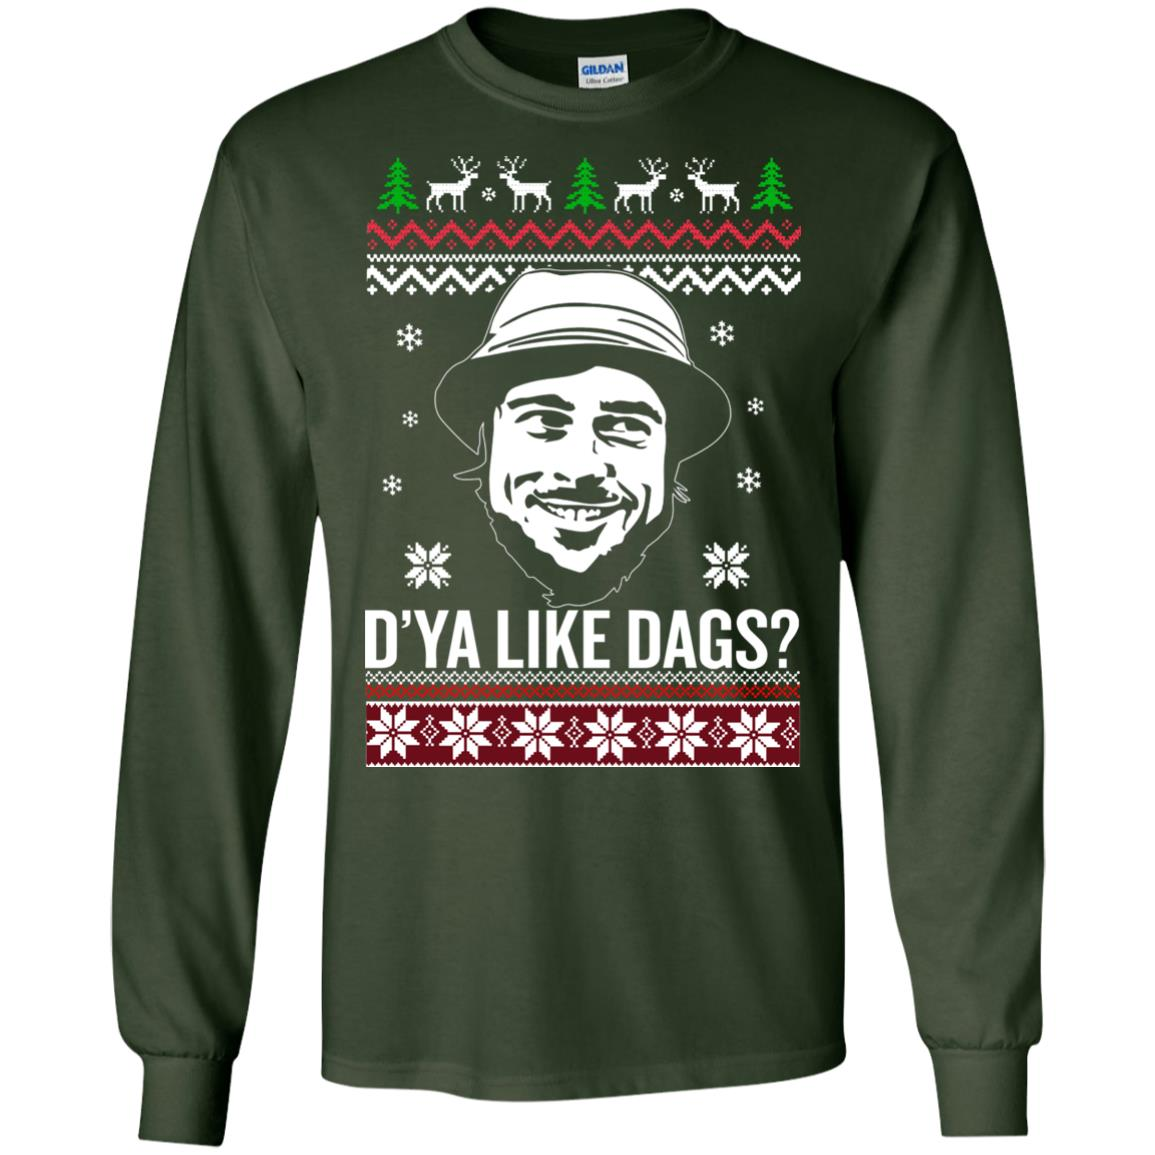 image 3151 - The Snatch D'ya like Dags Ugly Sweater, Christmas Sweatshirt